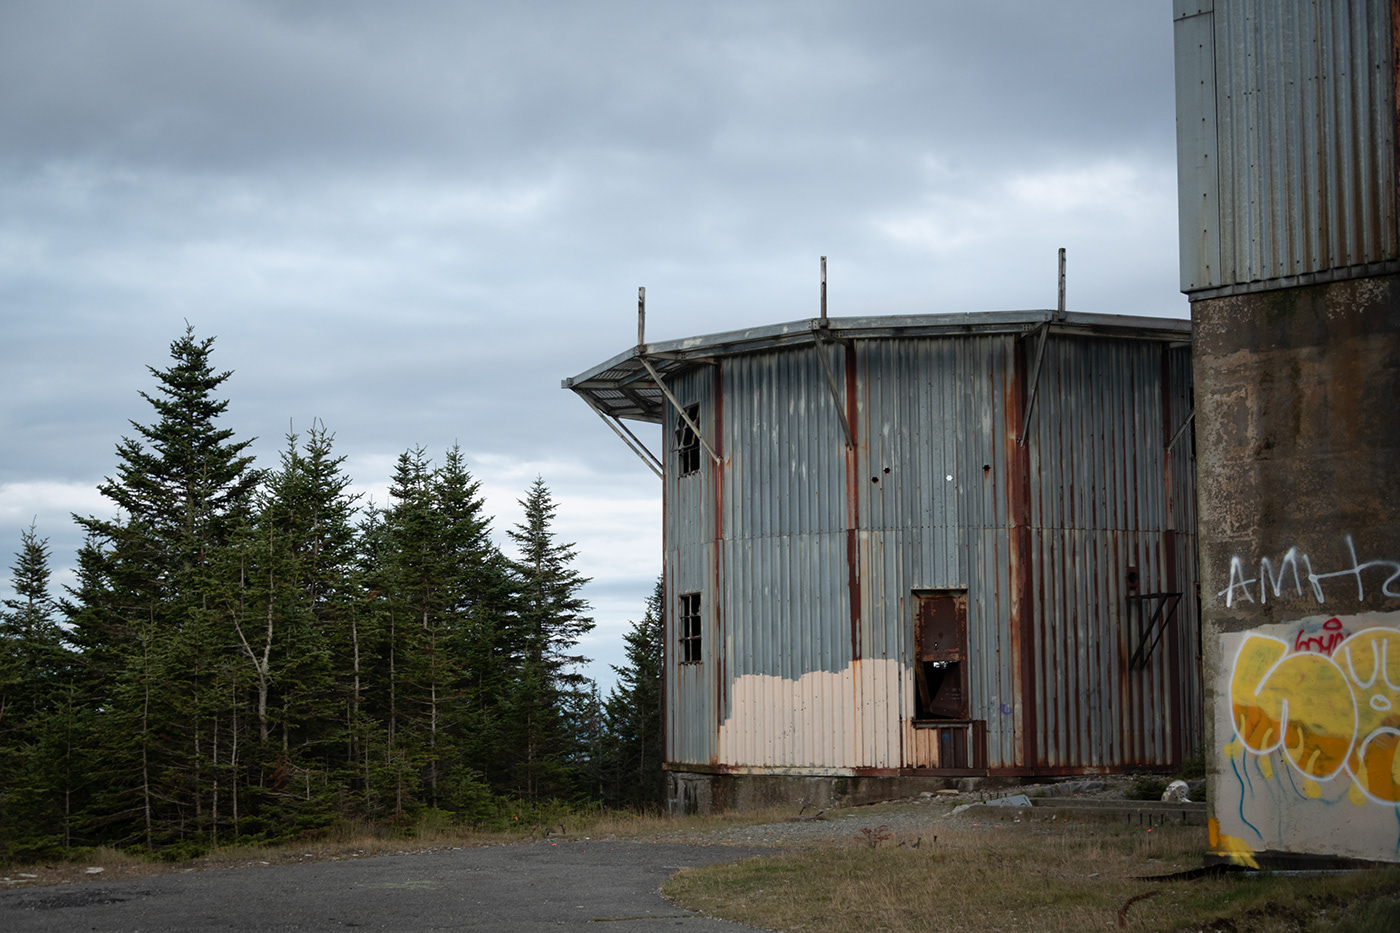 abandoned exploration Military New England Nikon D850 old rusty view